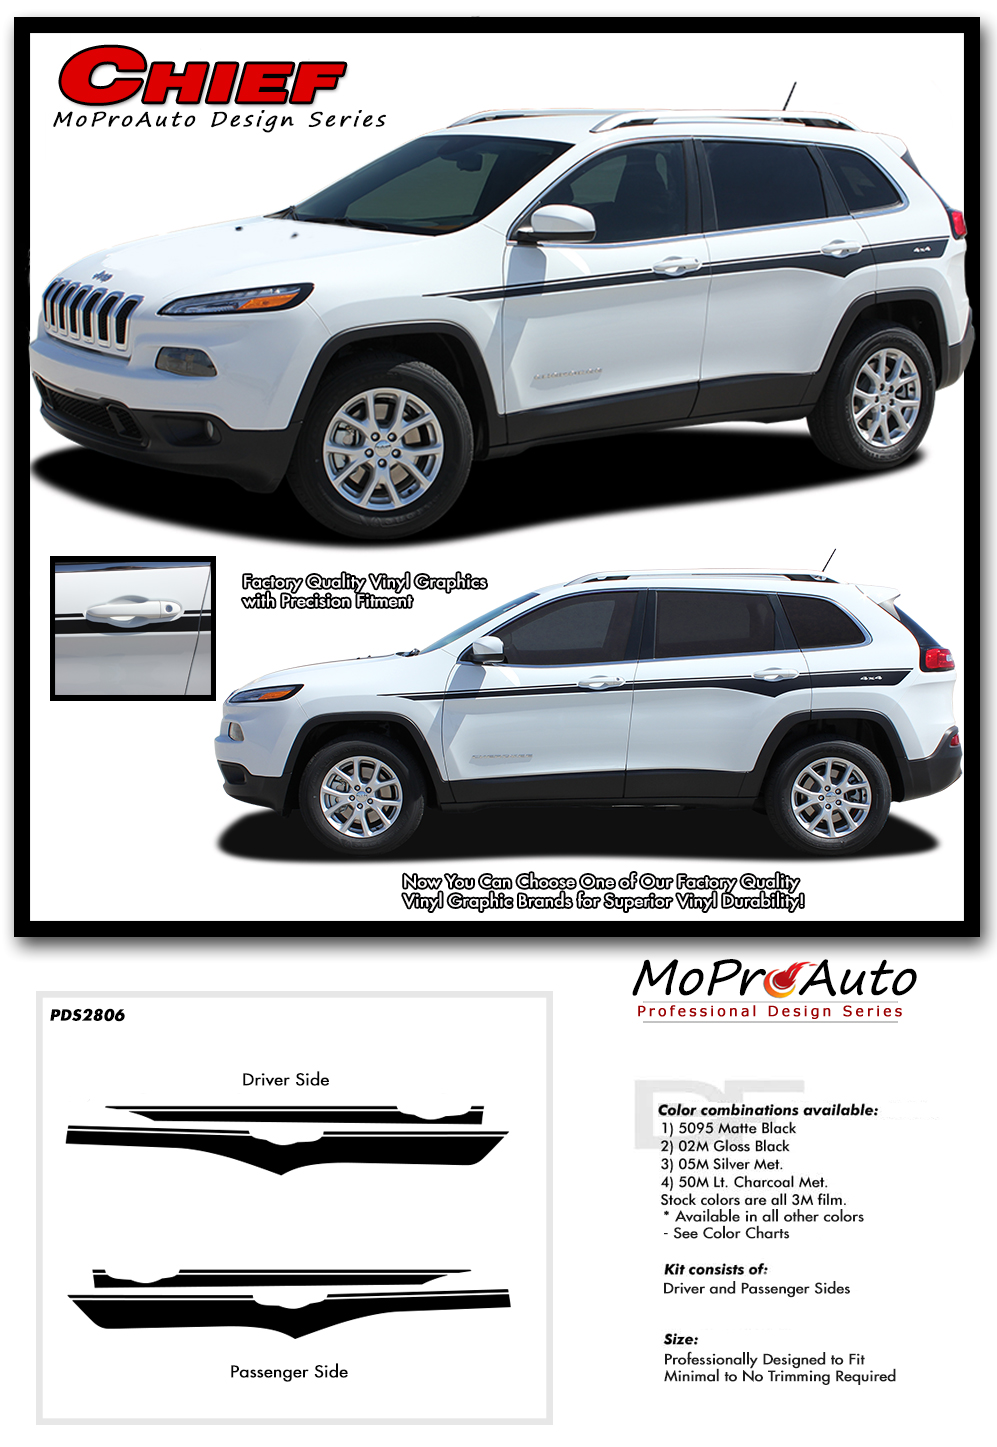 2013, 2014, 2015, 2016, 2017, 2018, 2019, 2020 Chief Jeep Cherokee - MoProAuto Pro Design Series Vinyl Graphics, Stripes and Decals Kit